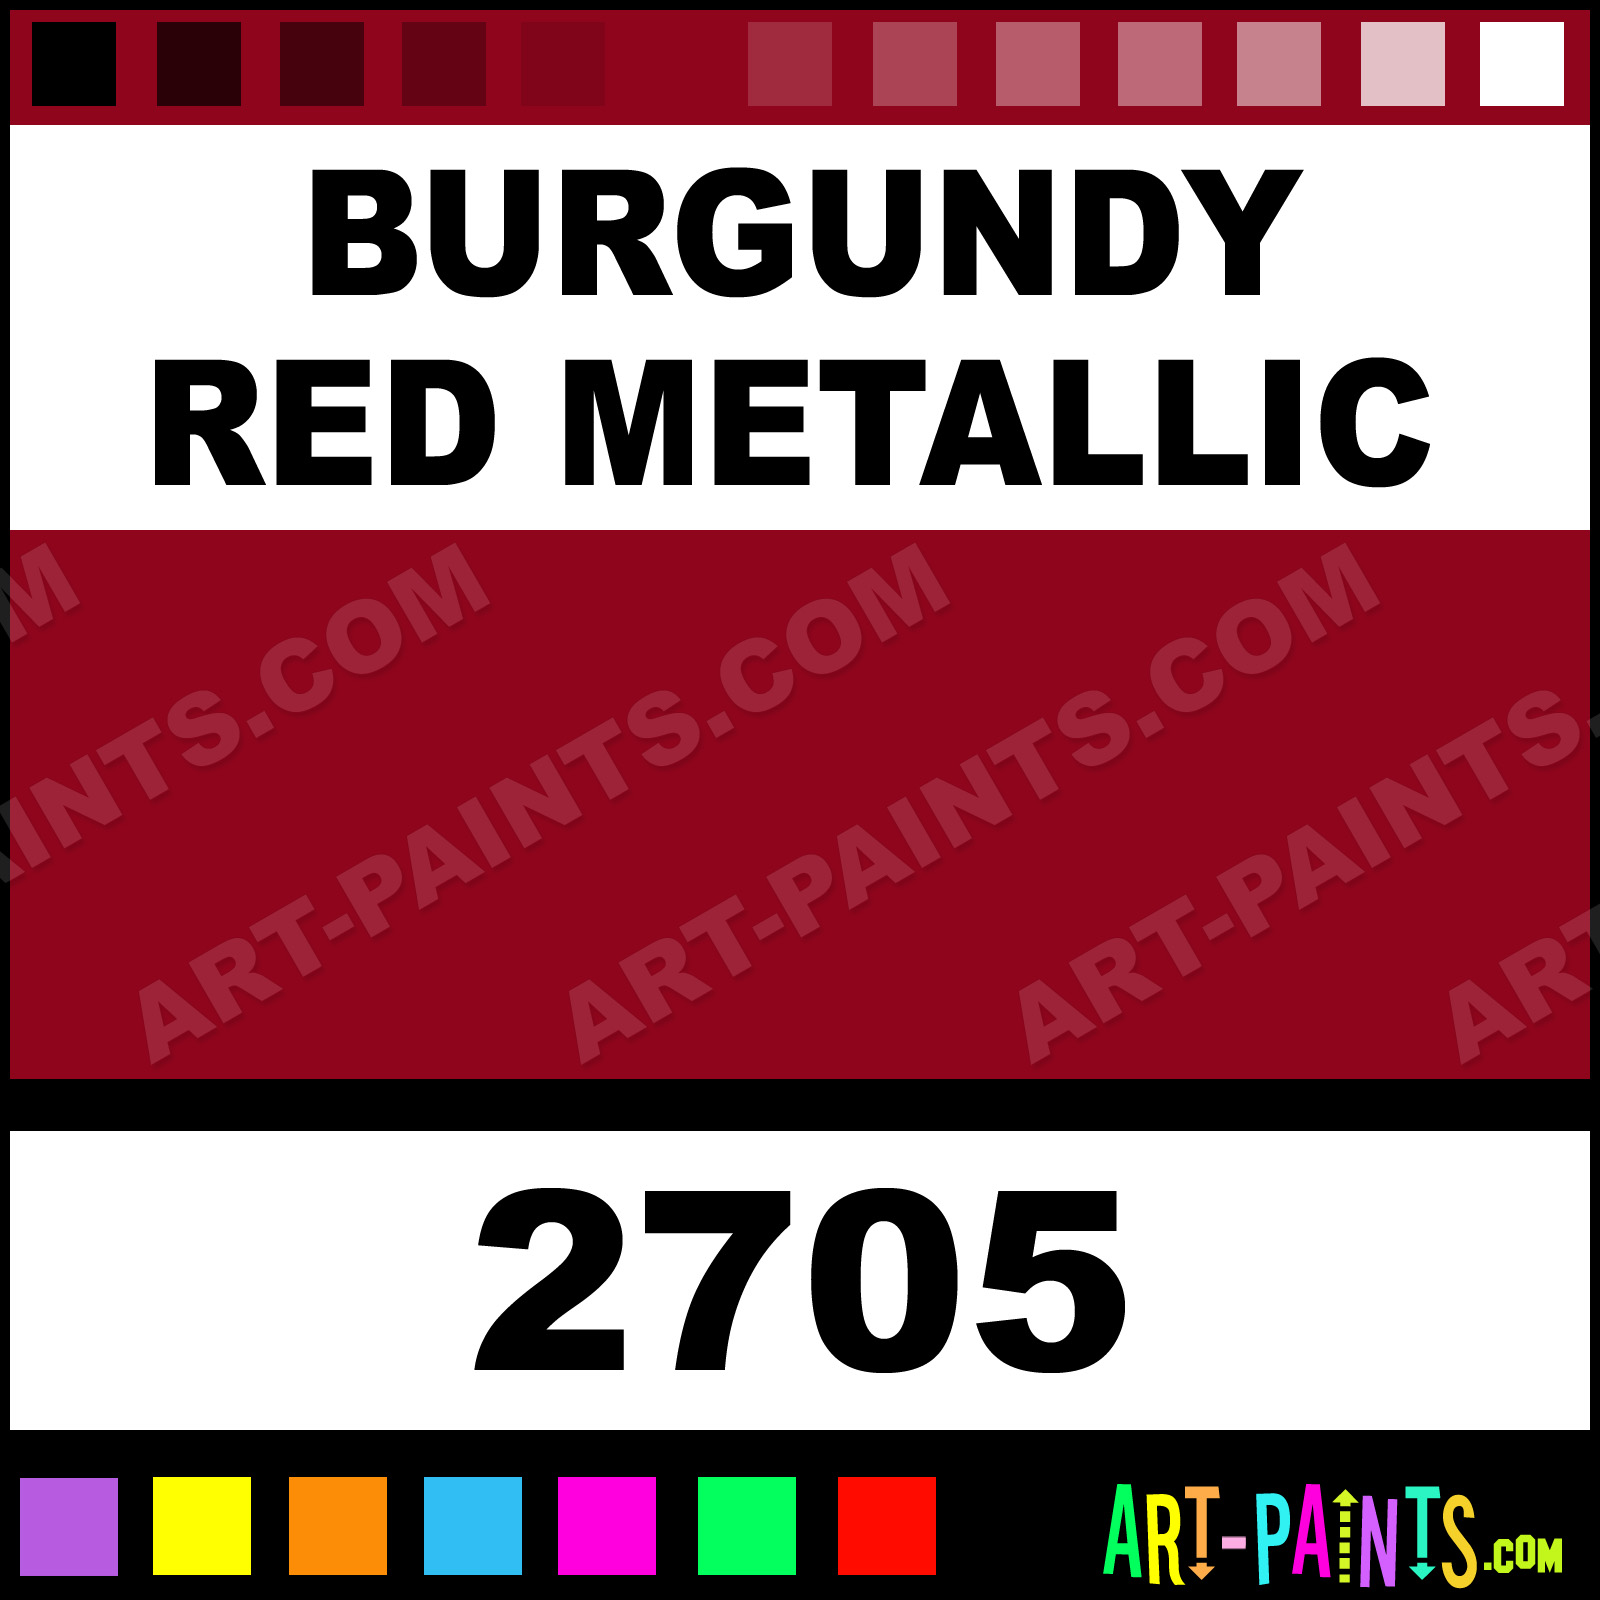 colour car metallic : Burgundy red metallic